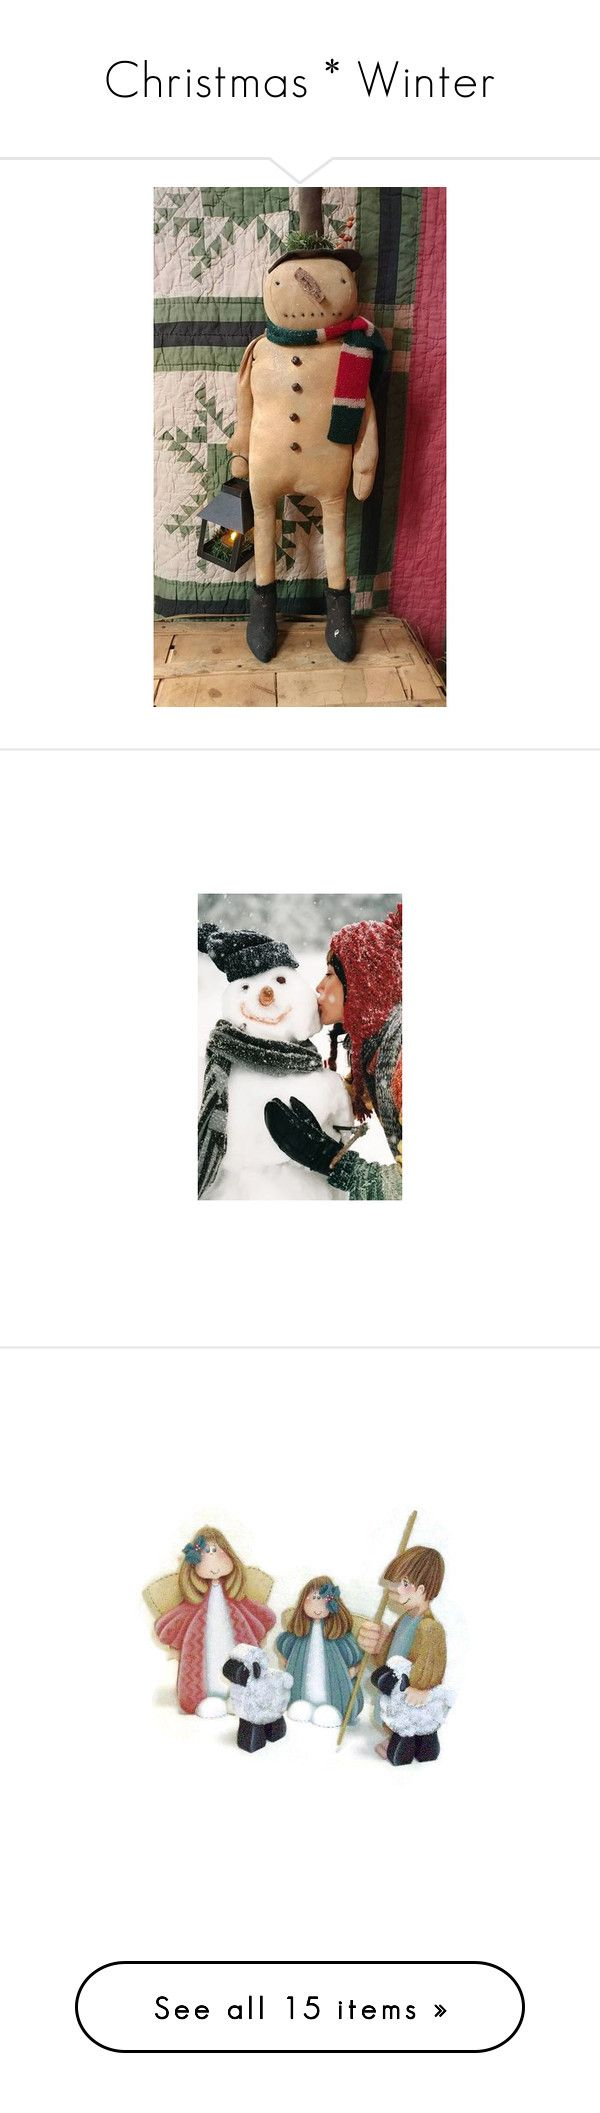 """""""Christmas * Winter"""" by jillsjoyagol ❤ liked on Polyvore featuring home, home decor, holiday decorations, battery powered lanterns, black lantern, green lantern, battery operated lanterns, black home decor, christmas and winter"""